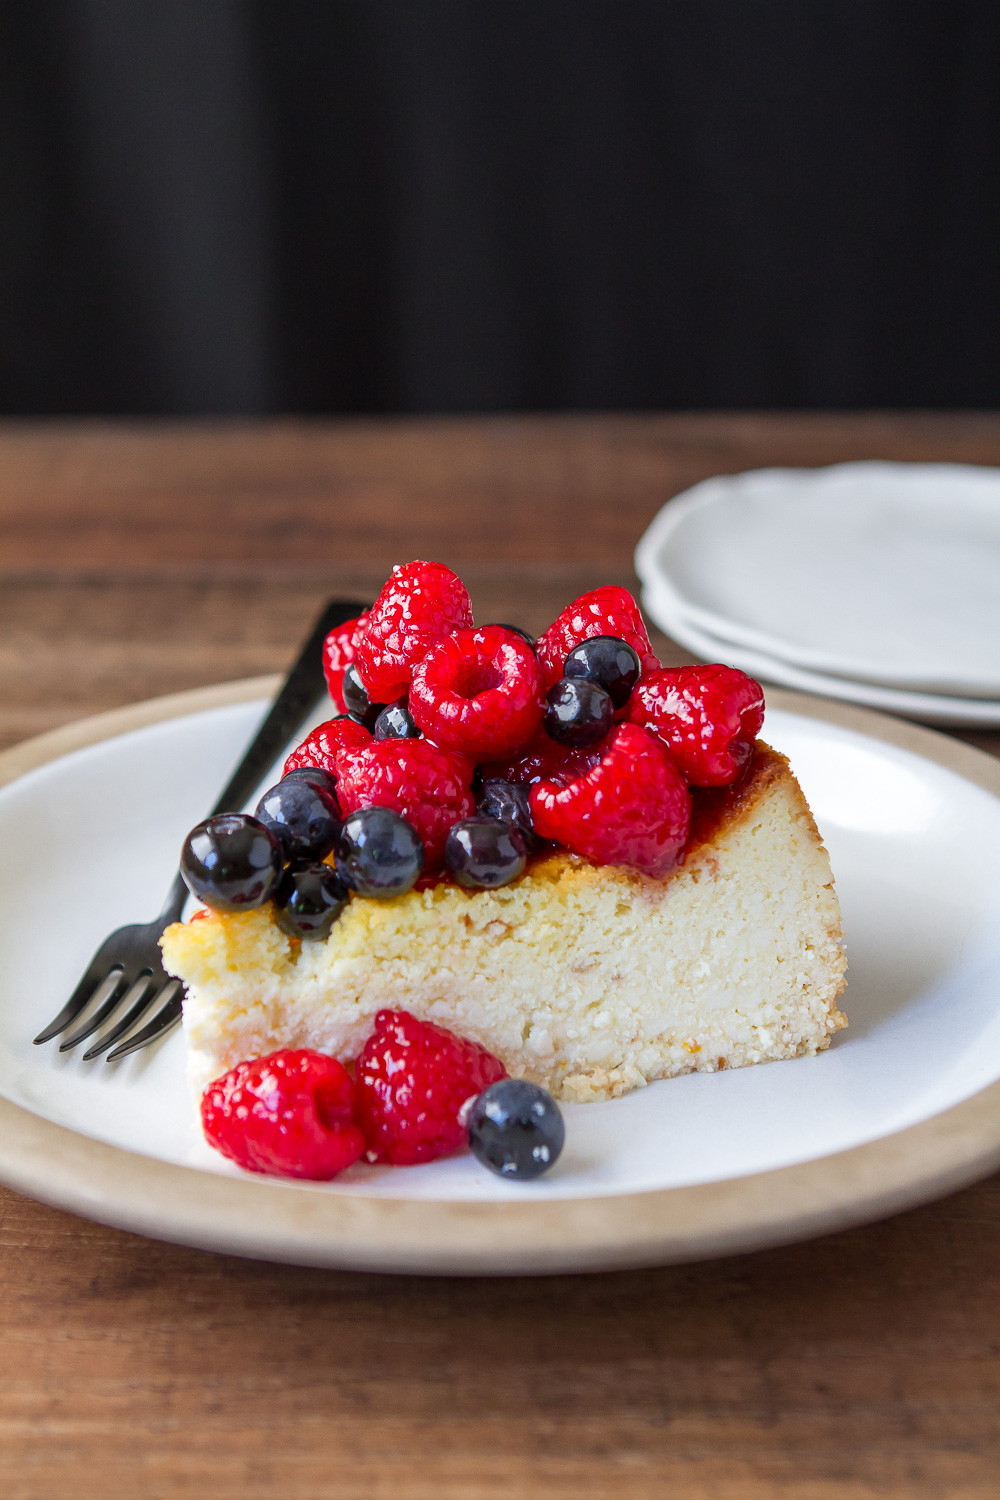 RICOTTA CHEESECAKE WITH GLAZED BERRIES